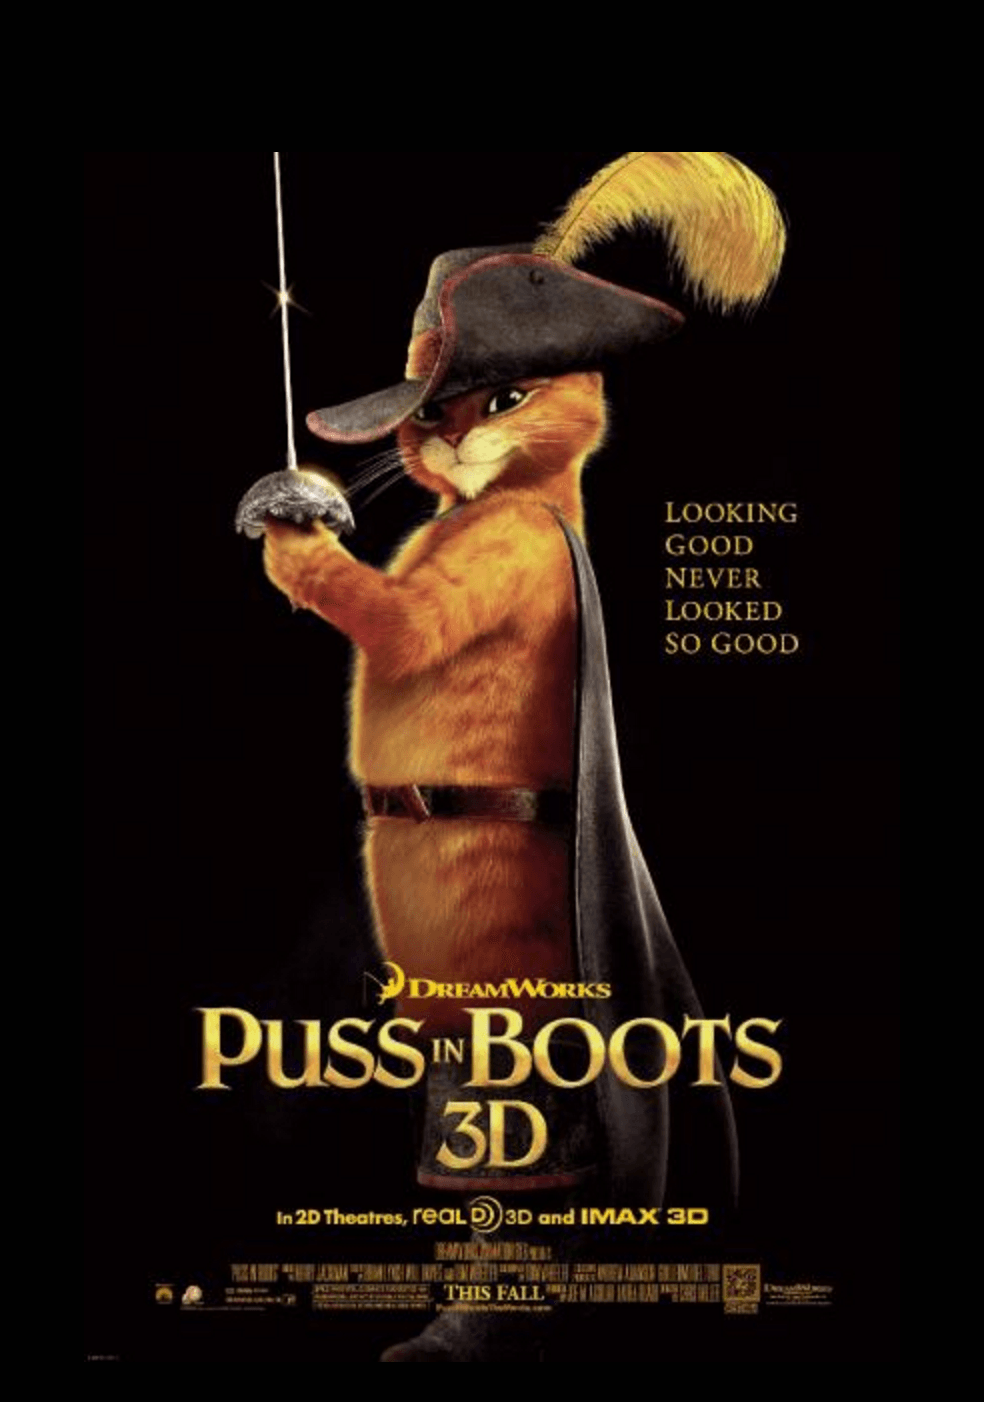 Puss In Boots 2 Movie Review | Nettv4u.com